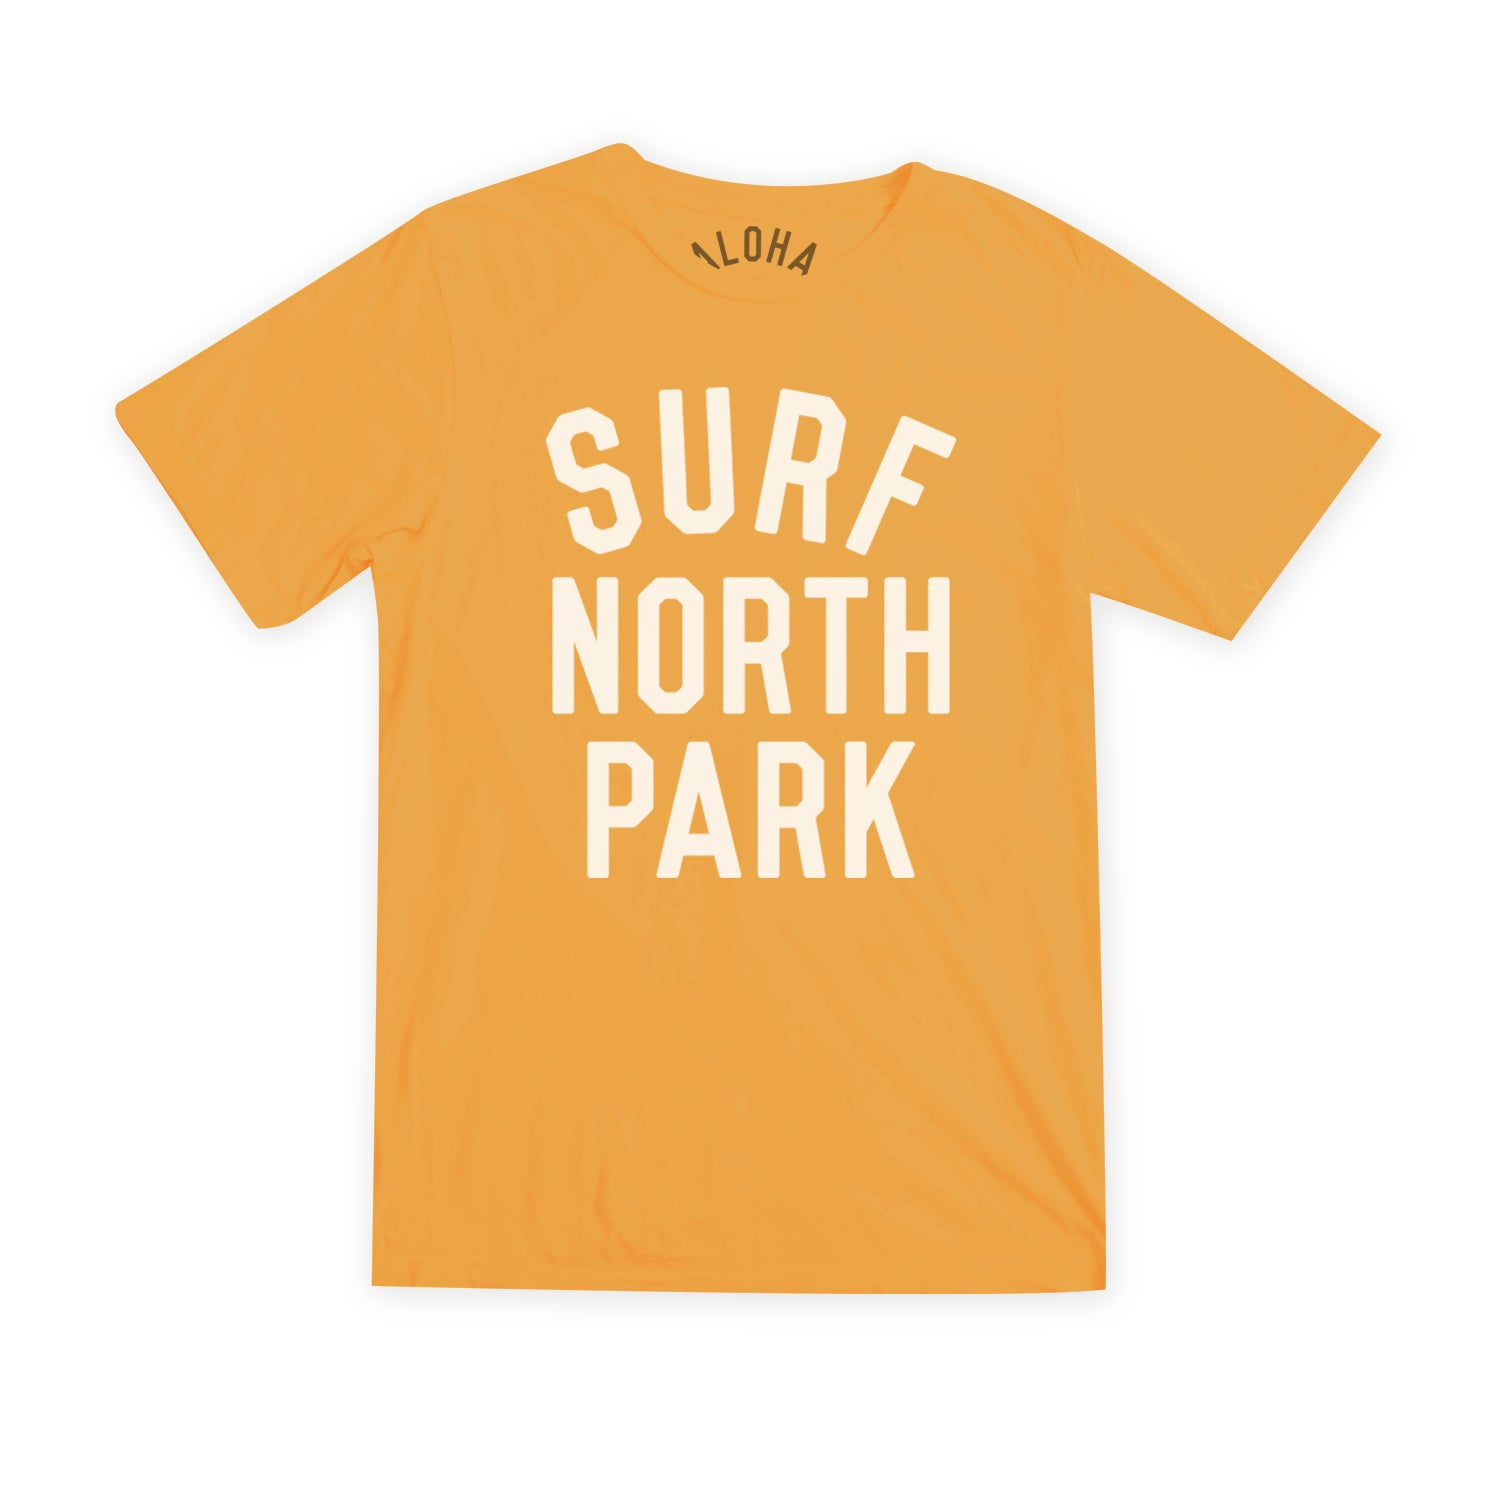 Aloha Beach Club - Surf North Park Burnt Orange Tee - Aloha Beach Club